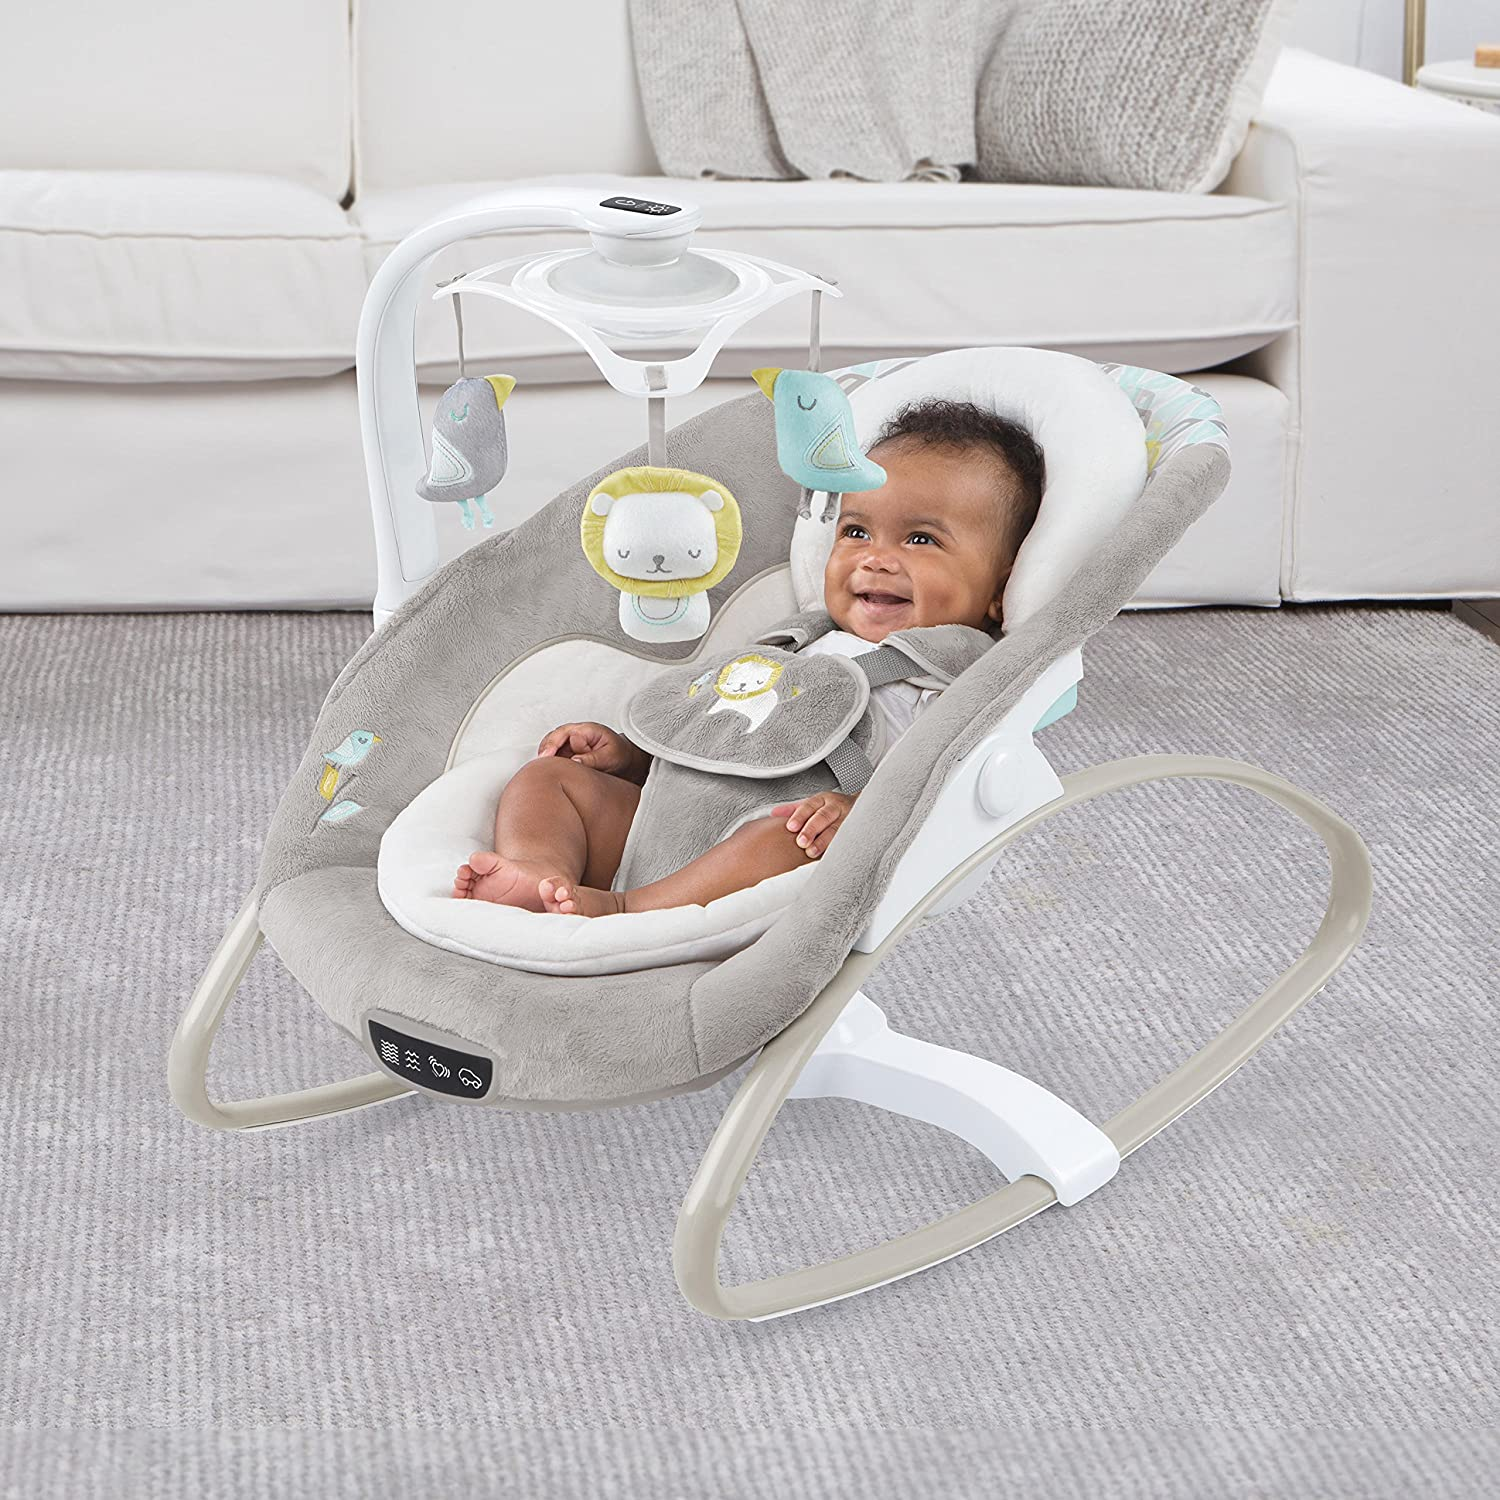 914X6l3DhuL. SL1500 The Best Baby Swings for Colic 2021 [In-depth-Review]